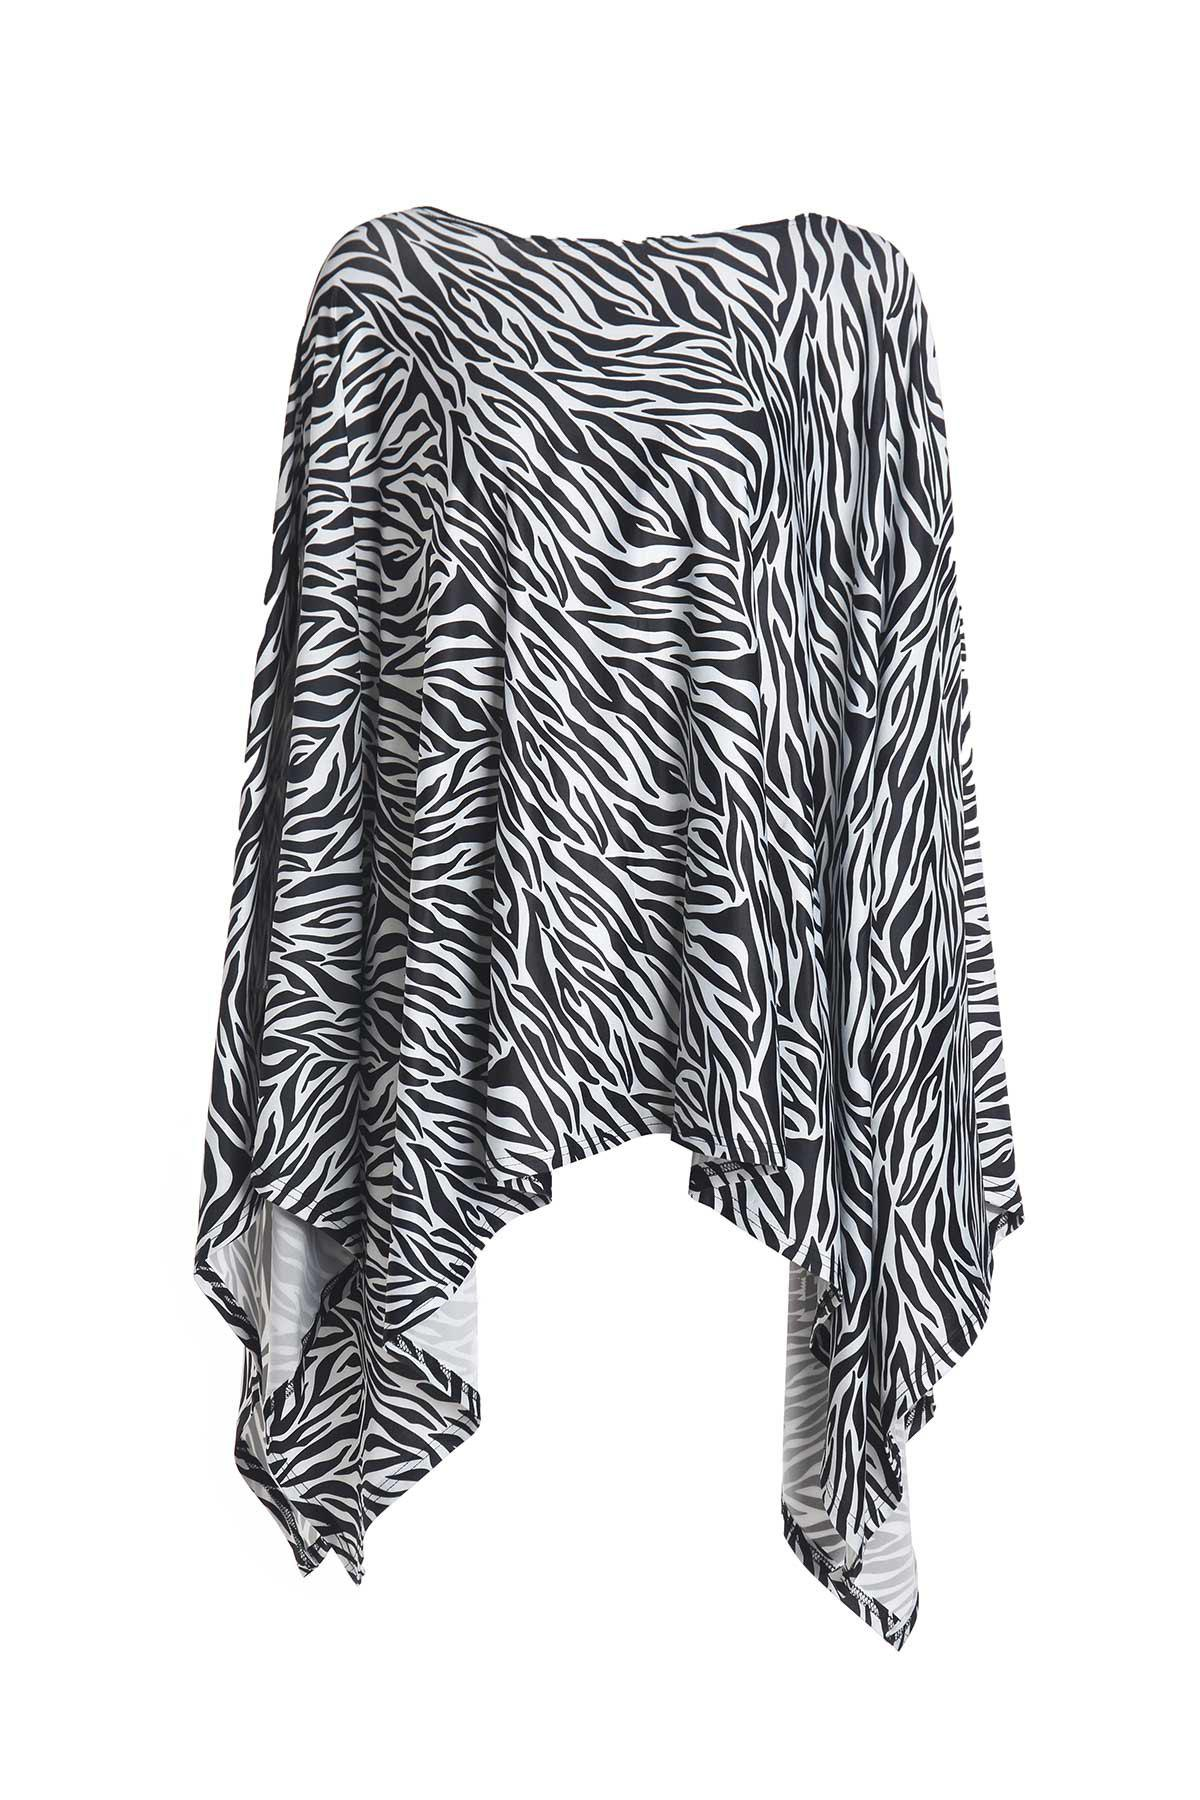 Fashionable Printed Skew Neck Irregular Cape Dress For Women